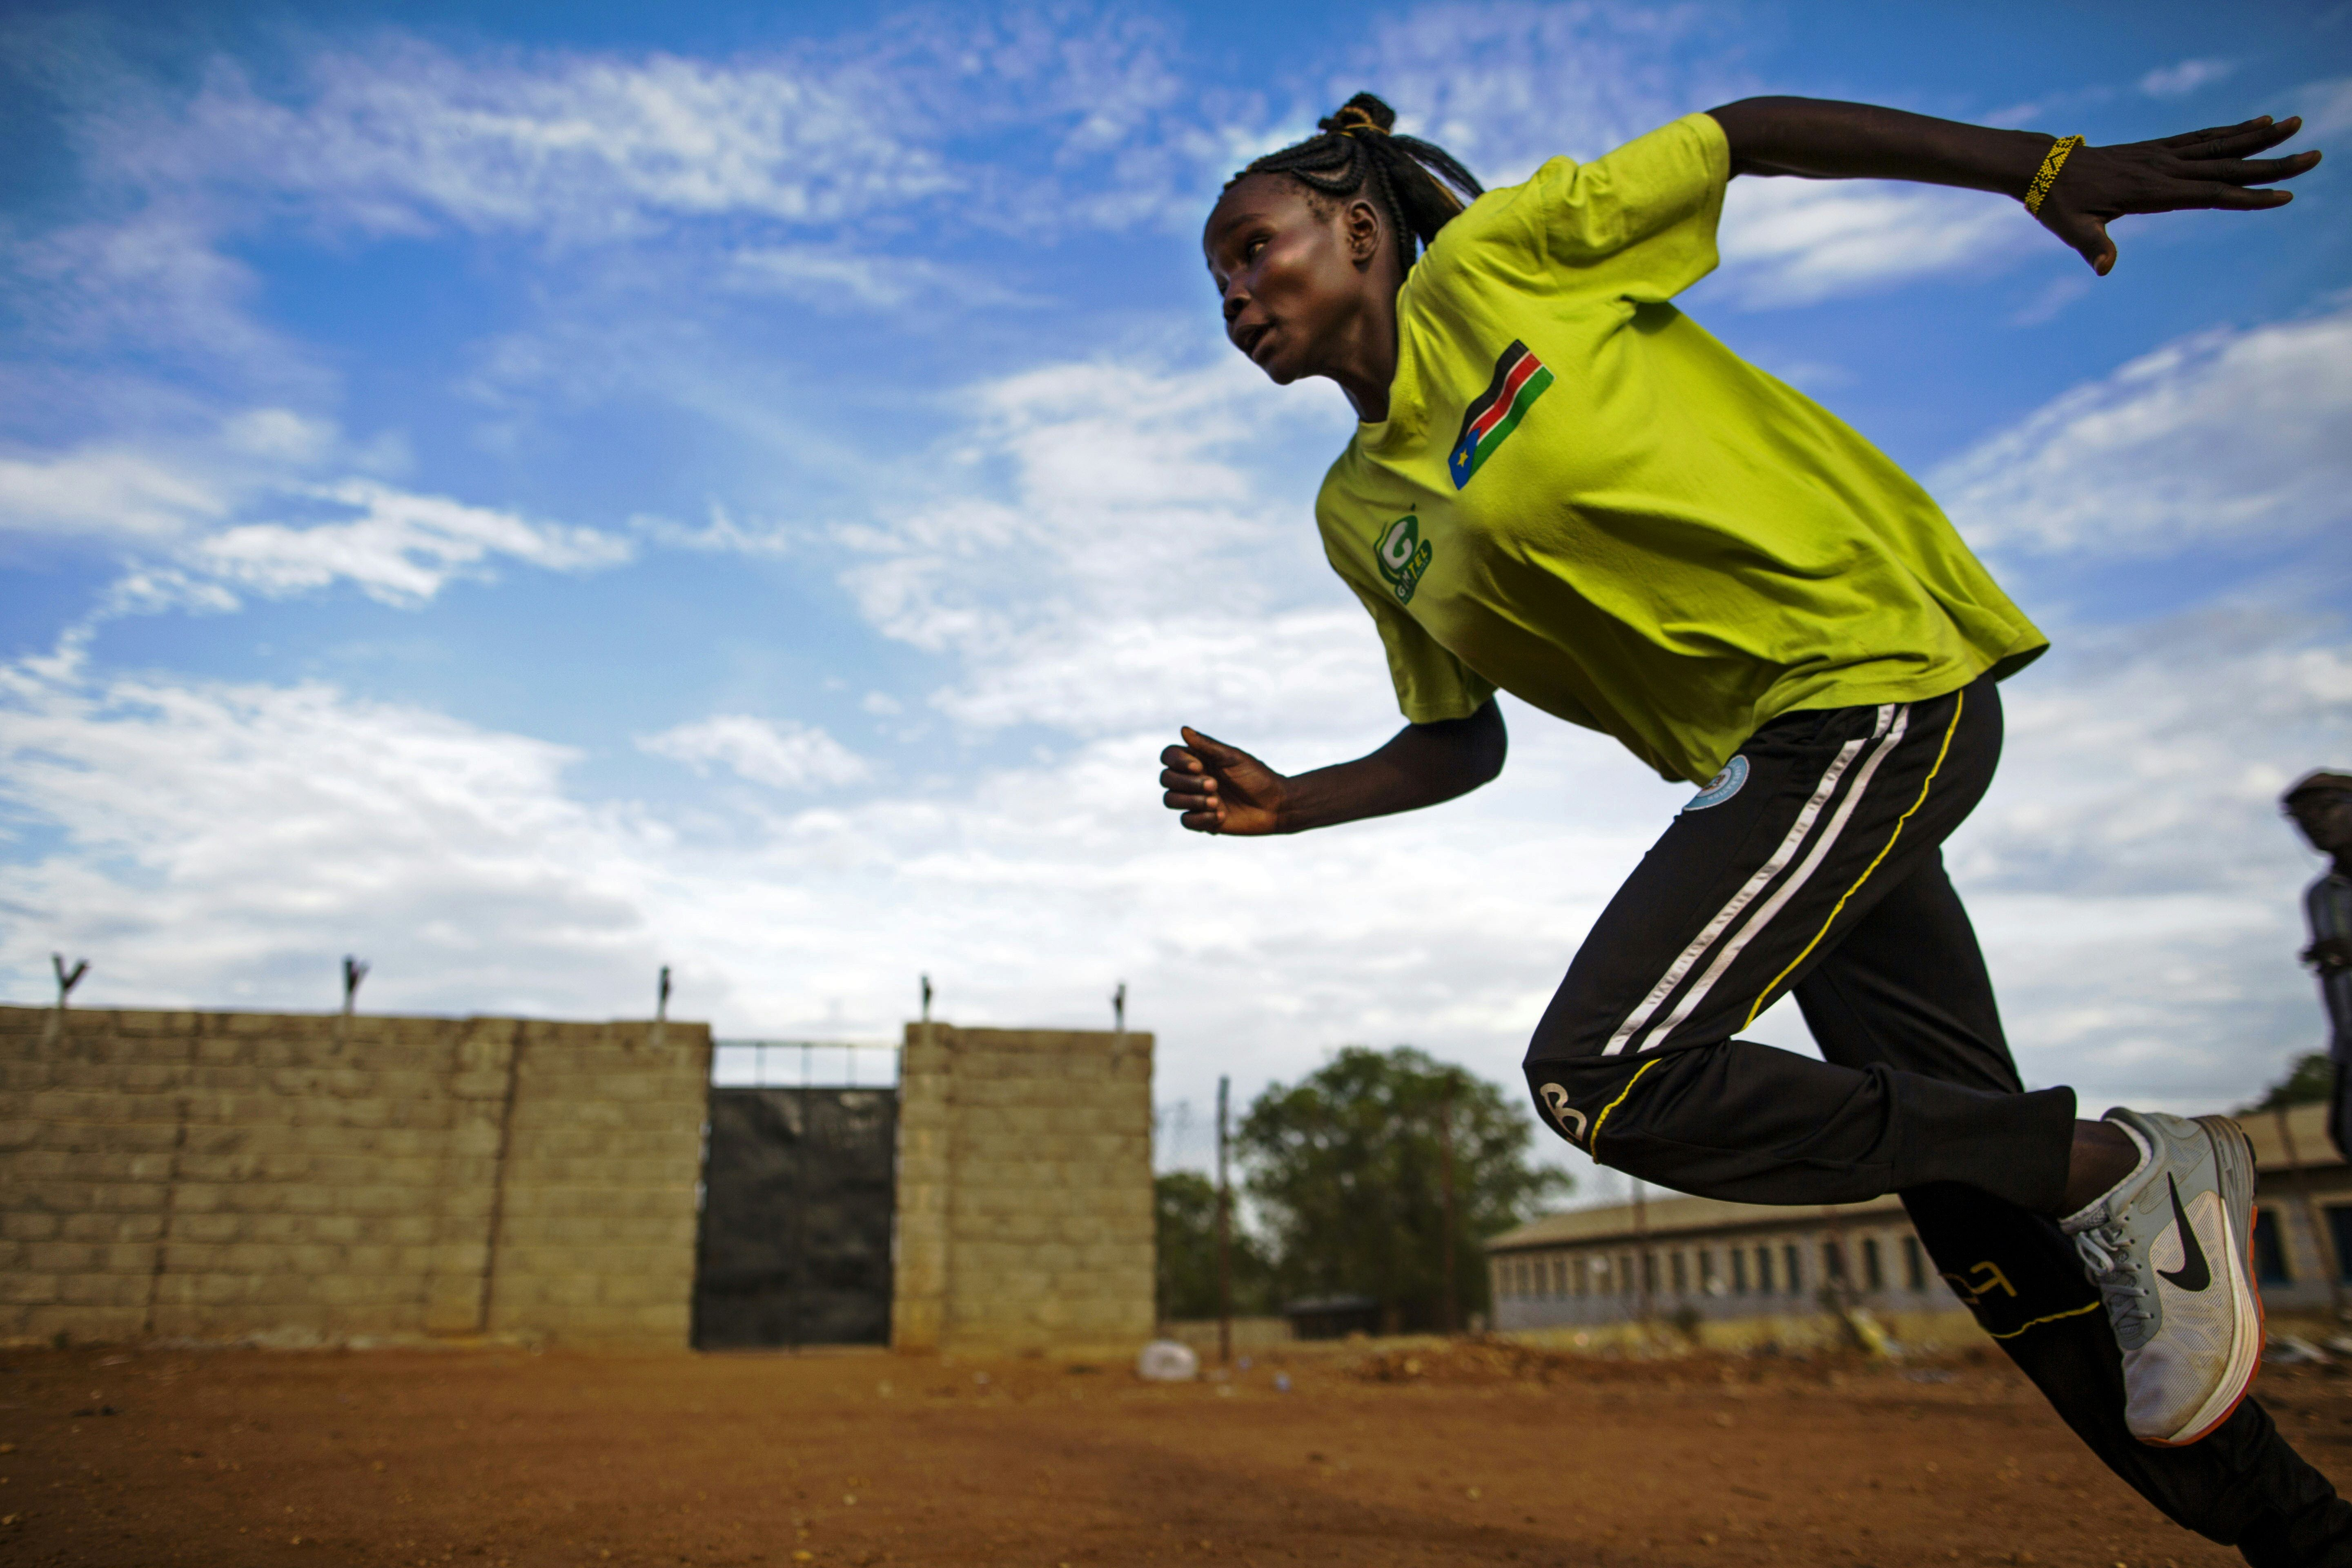 Margret Rumat Rumar Hassan, 19 years old, from Wau, South Sudan, trains at the open field of the Buluk Athletics Track in Juba, South Sudan.